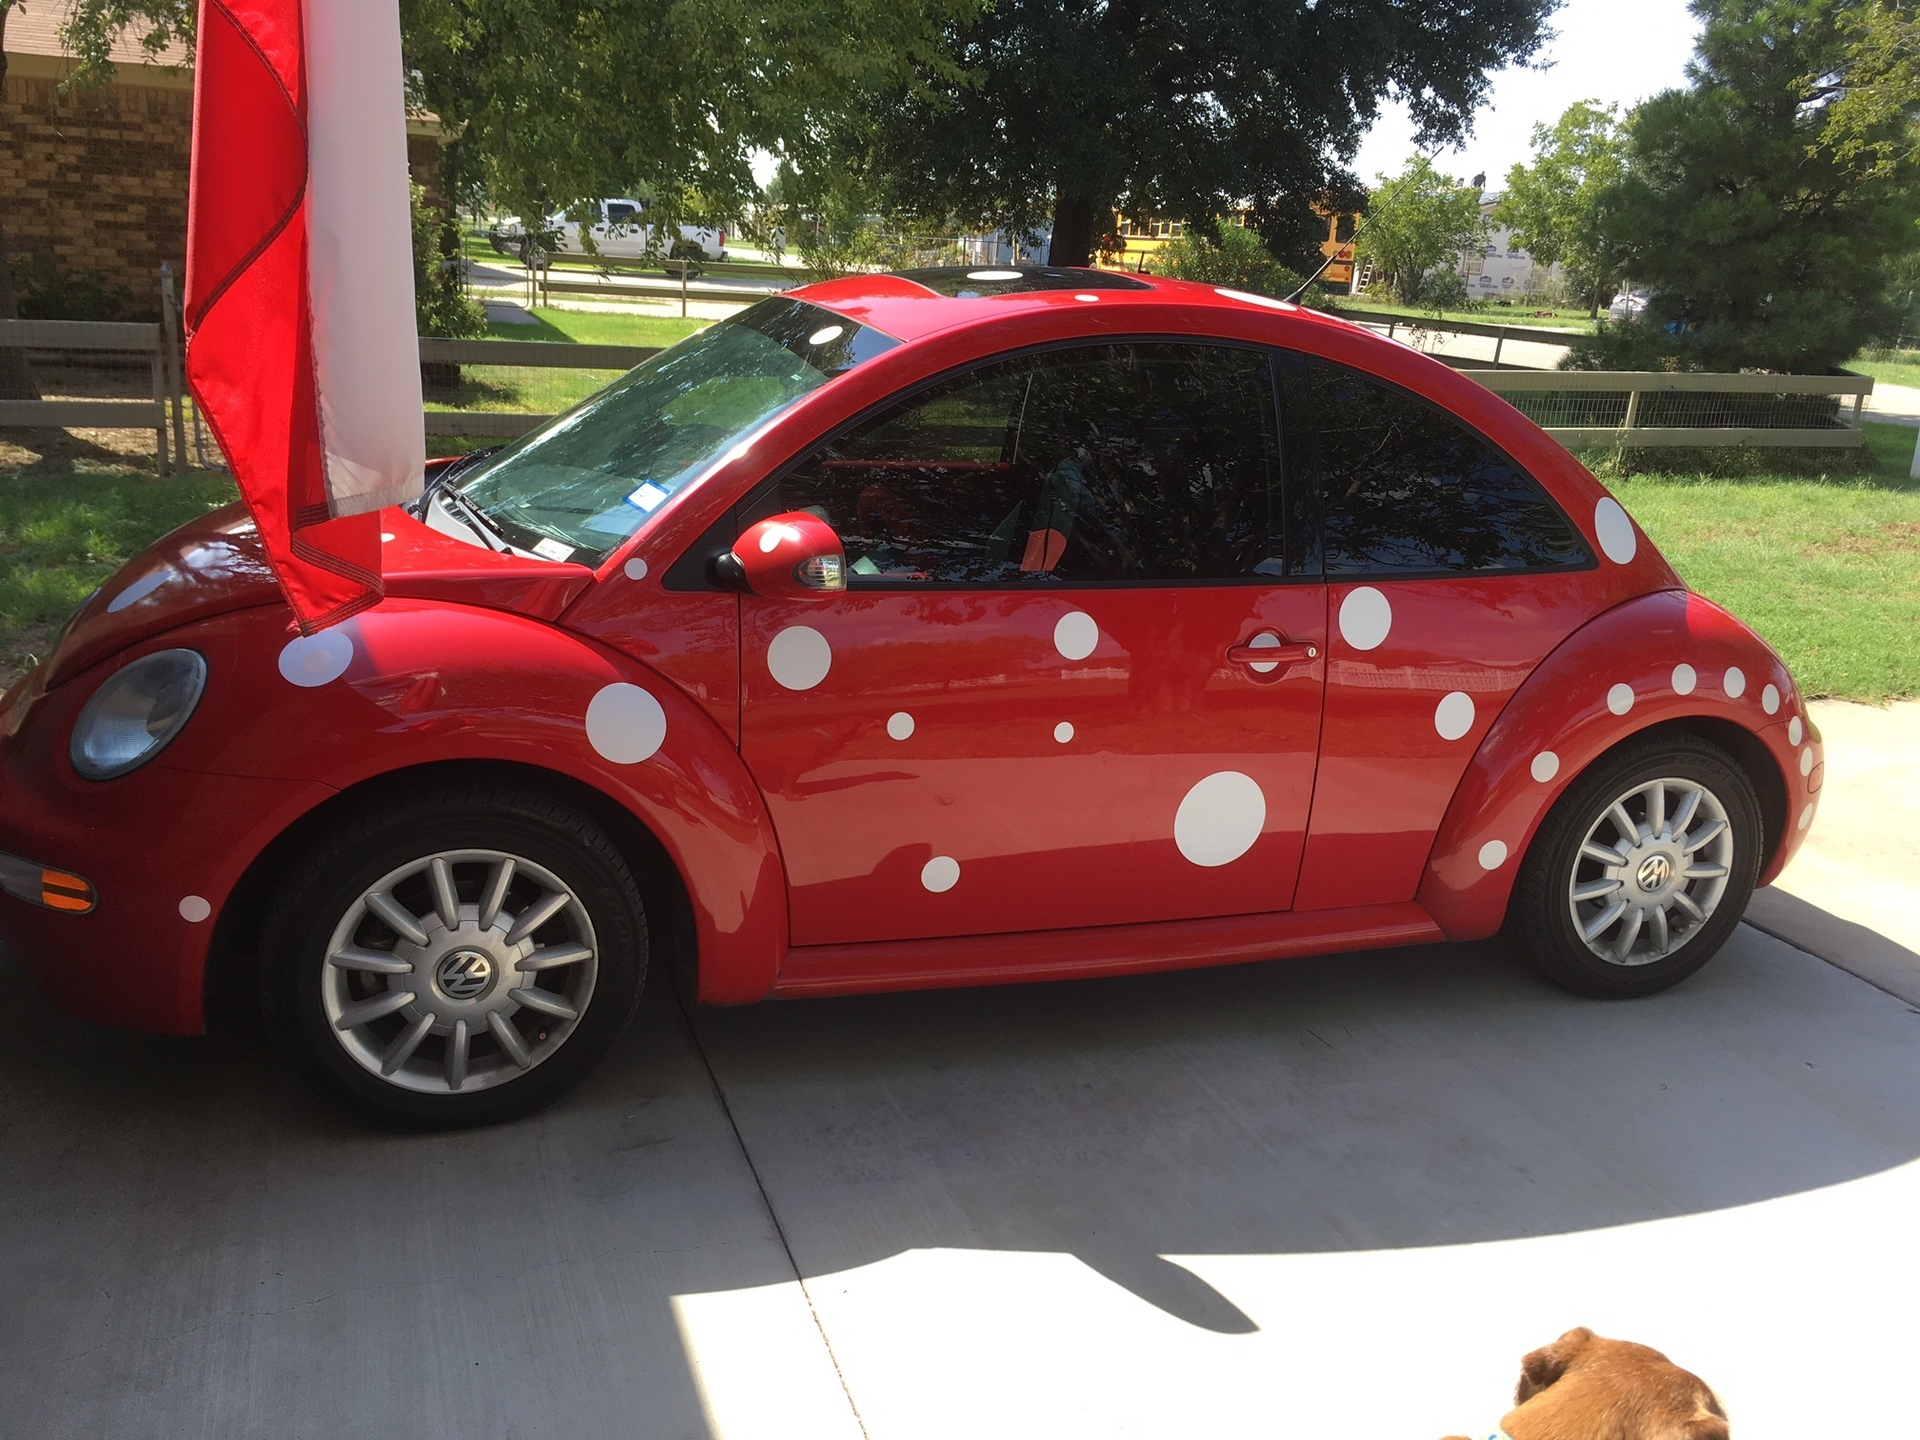 Tommanee's photograph of their Polka Dot Circle Shapes Sticker